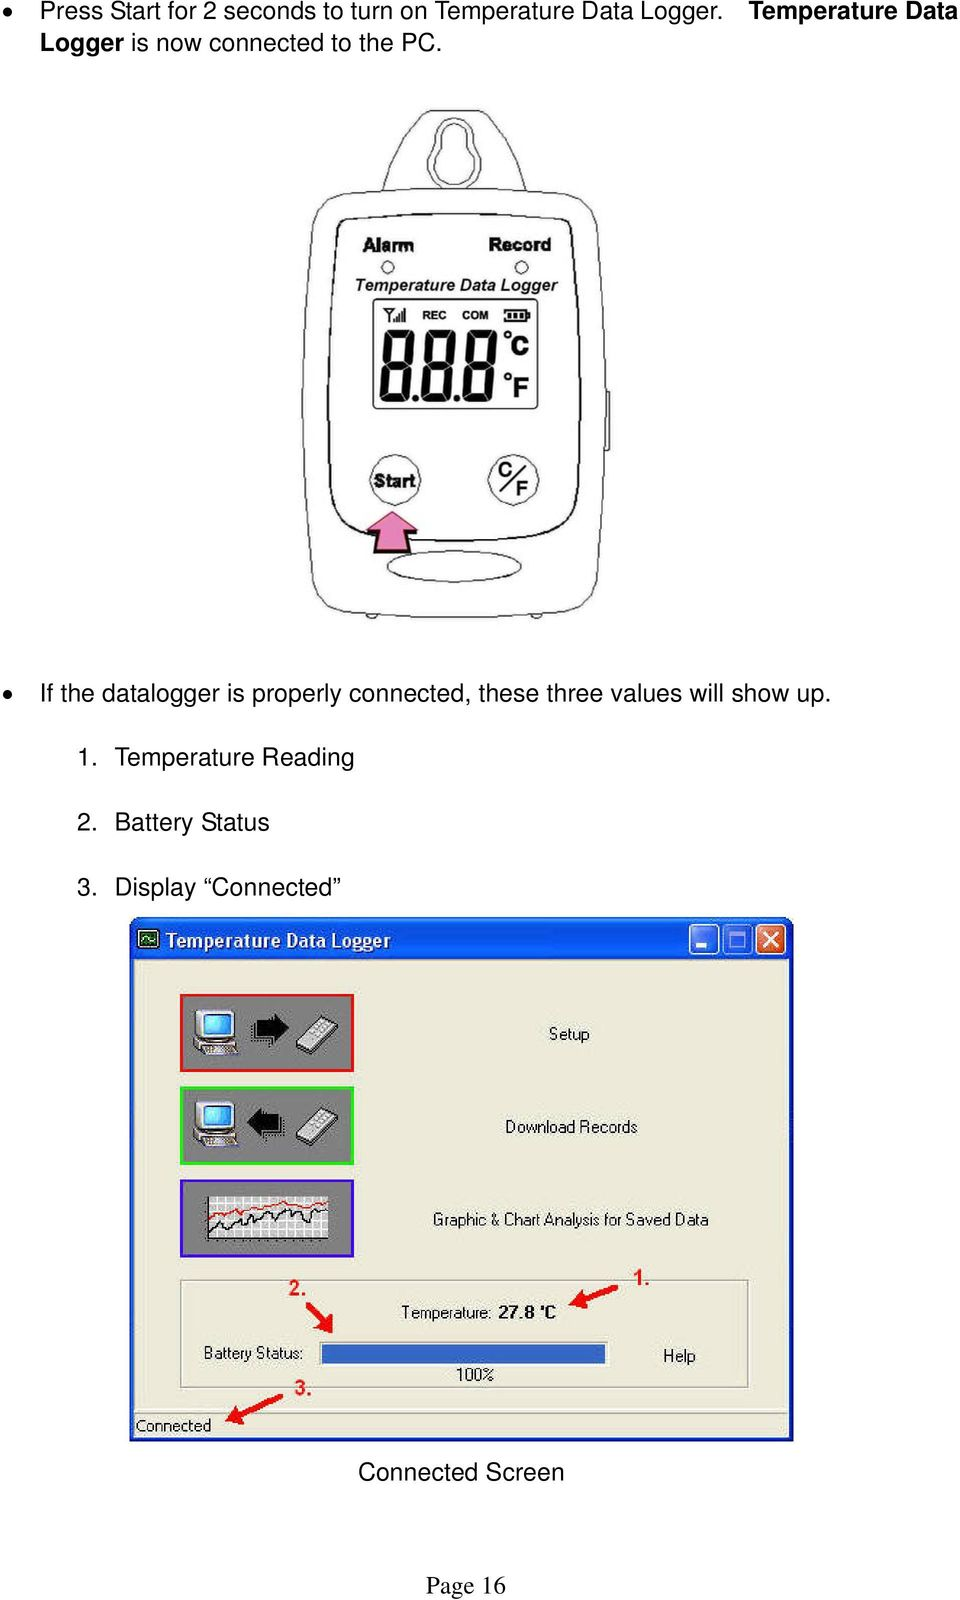 If the datalogger is properly connected, these three values will